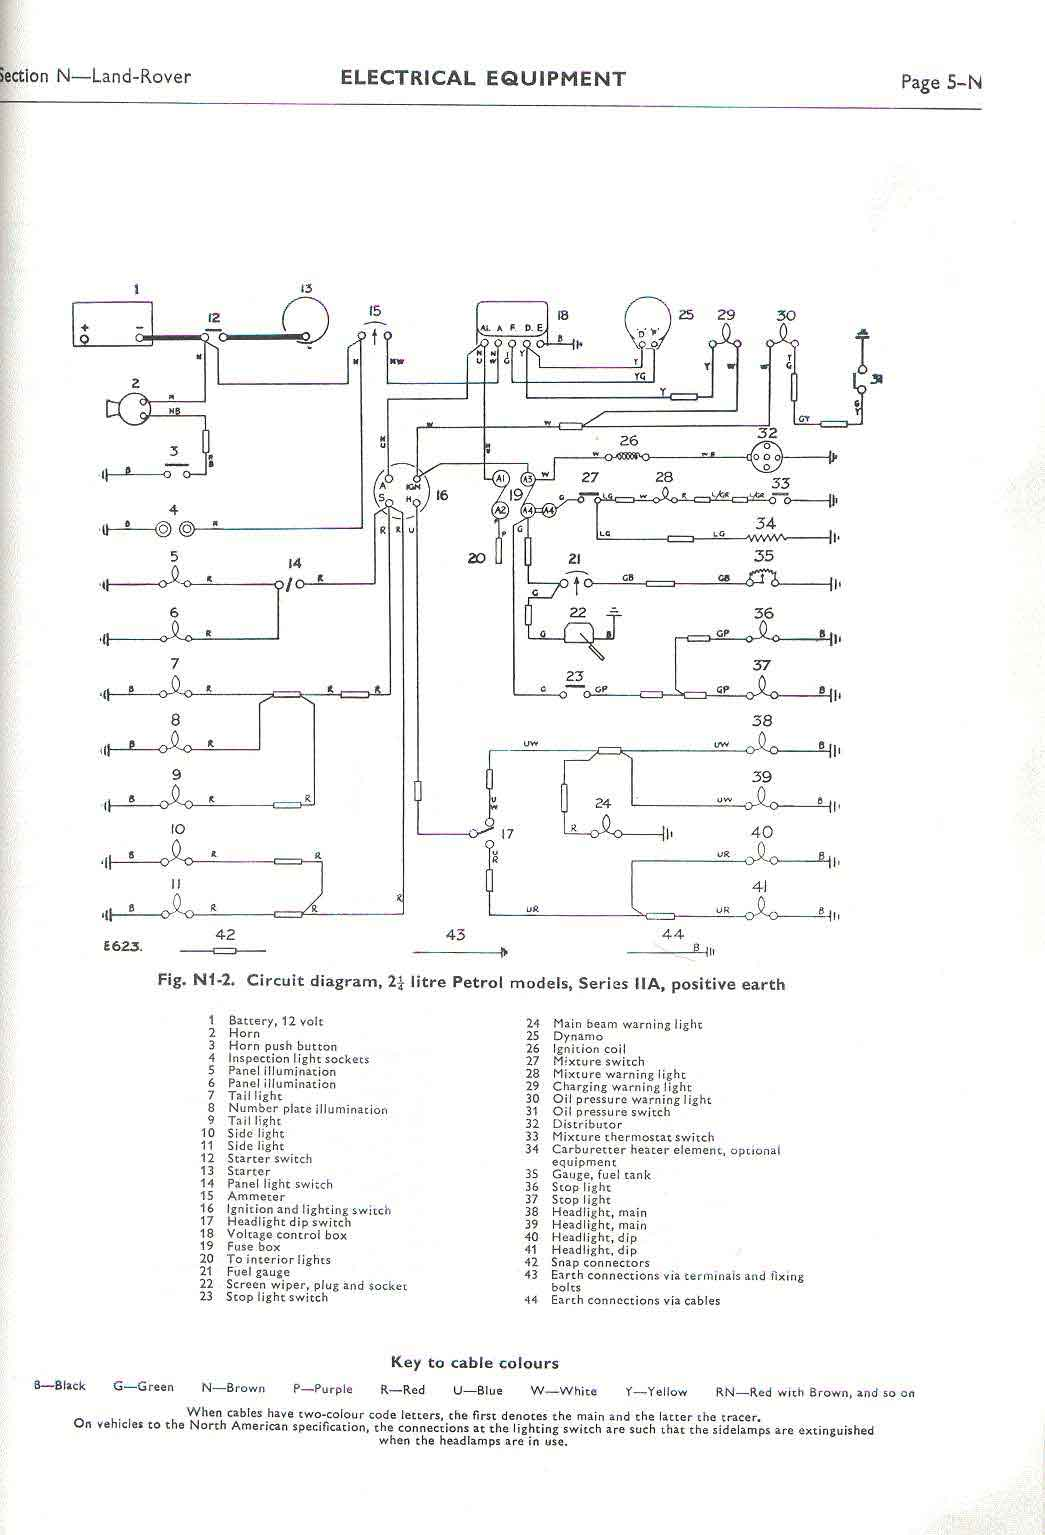 land rover faq repair maintenance series electrical wiring diagram 2 25l petrol model series iia positive earth